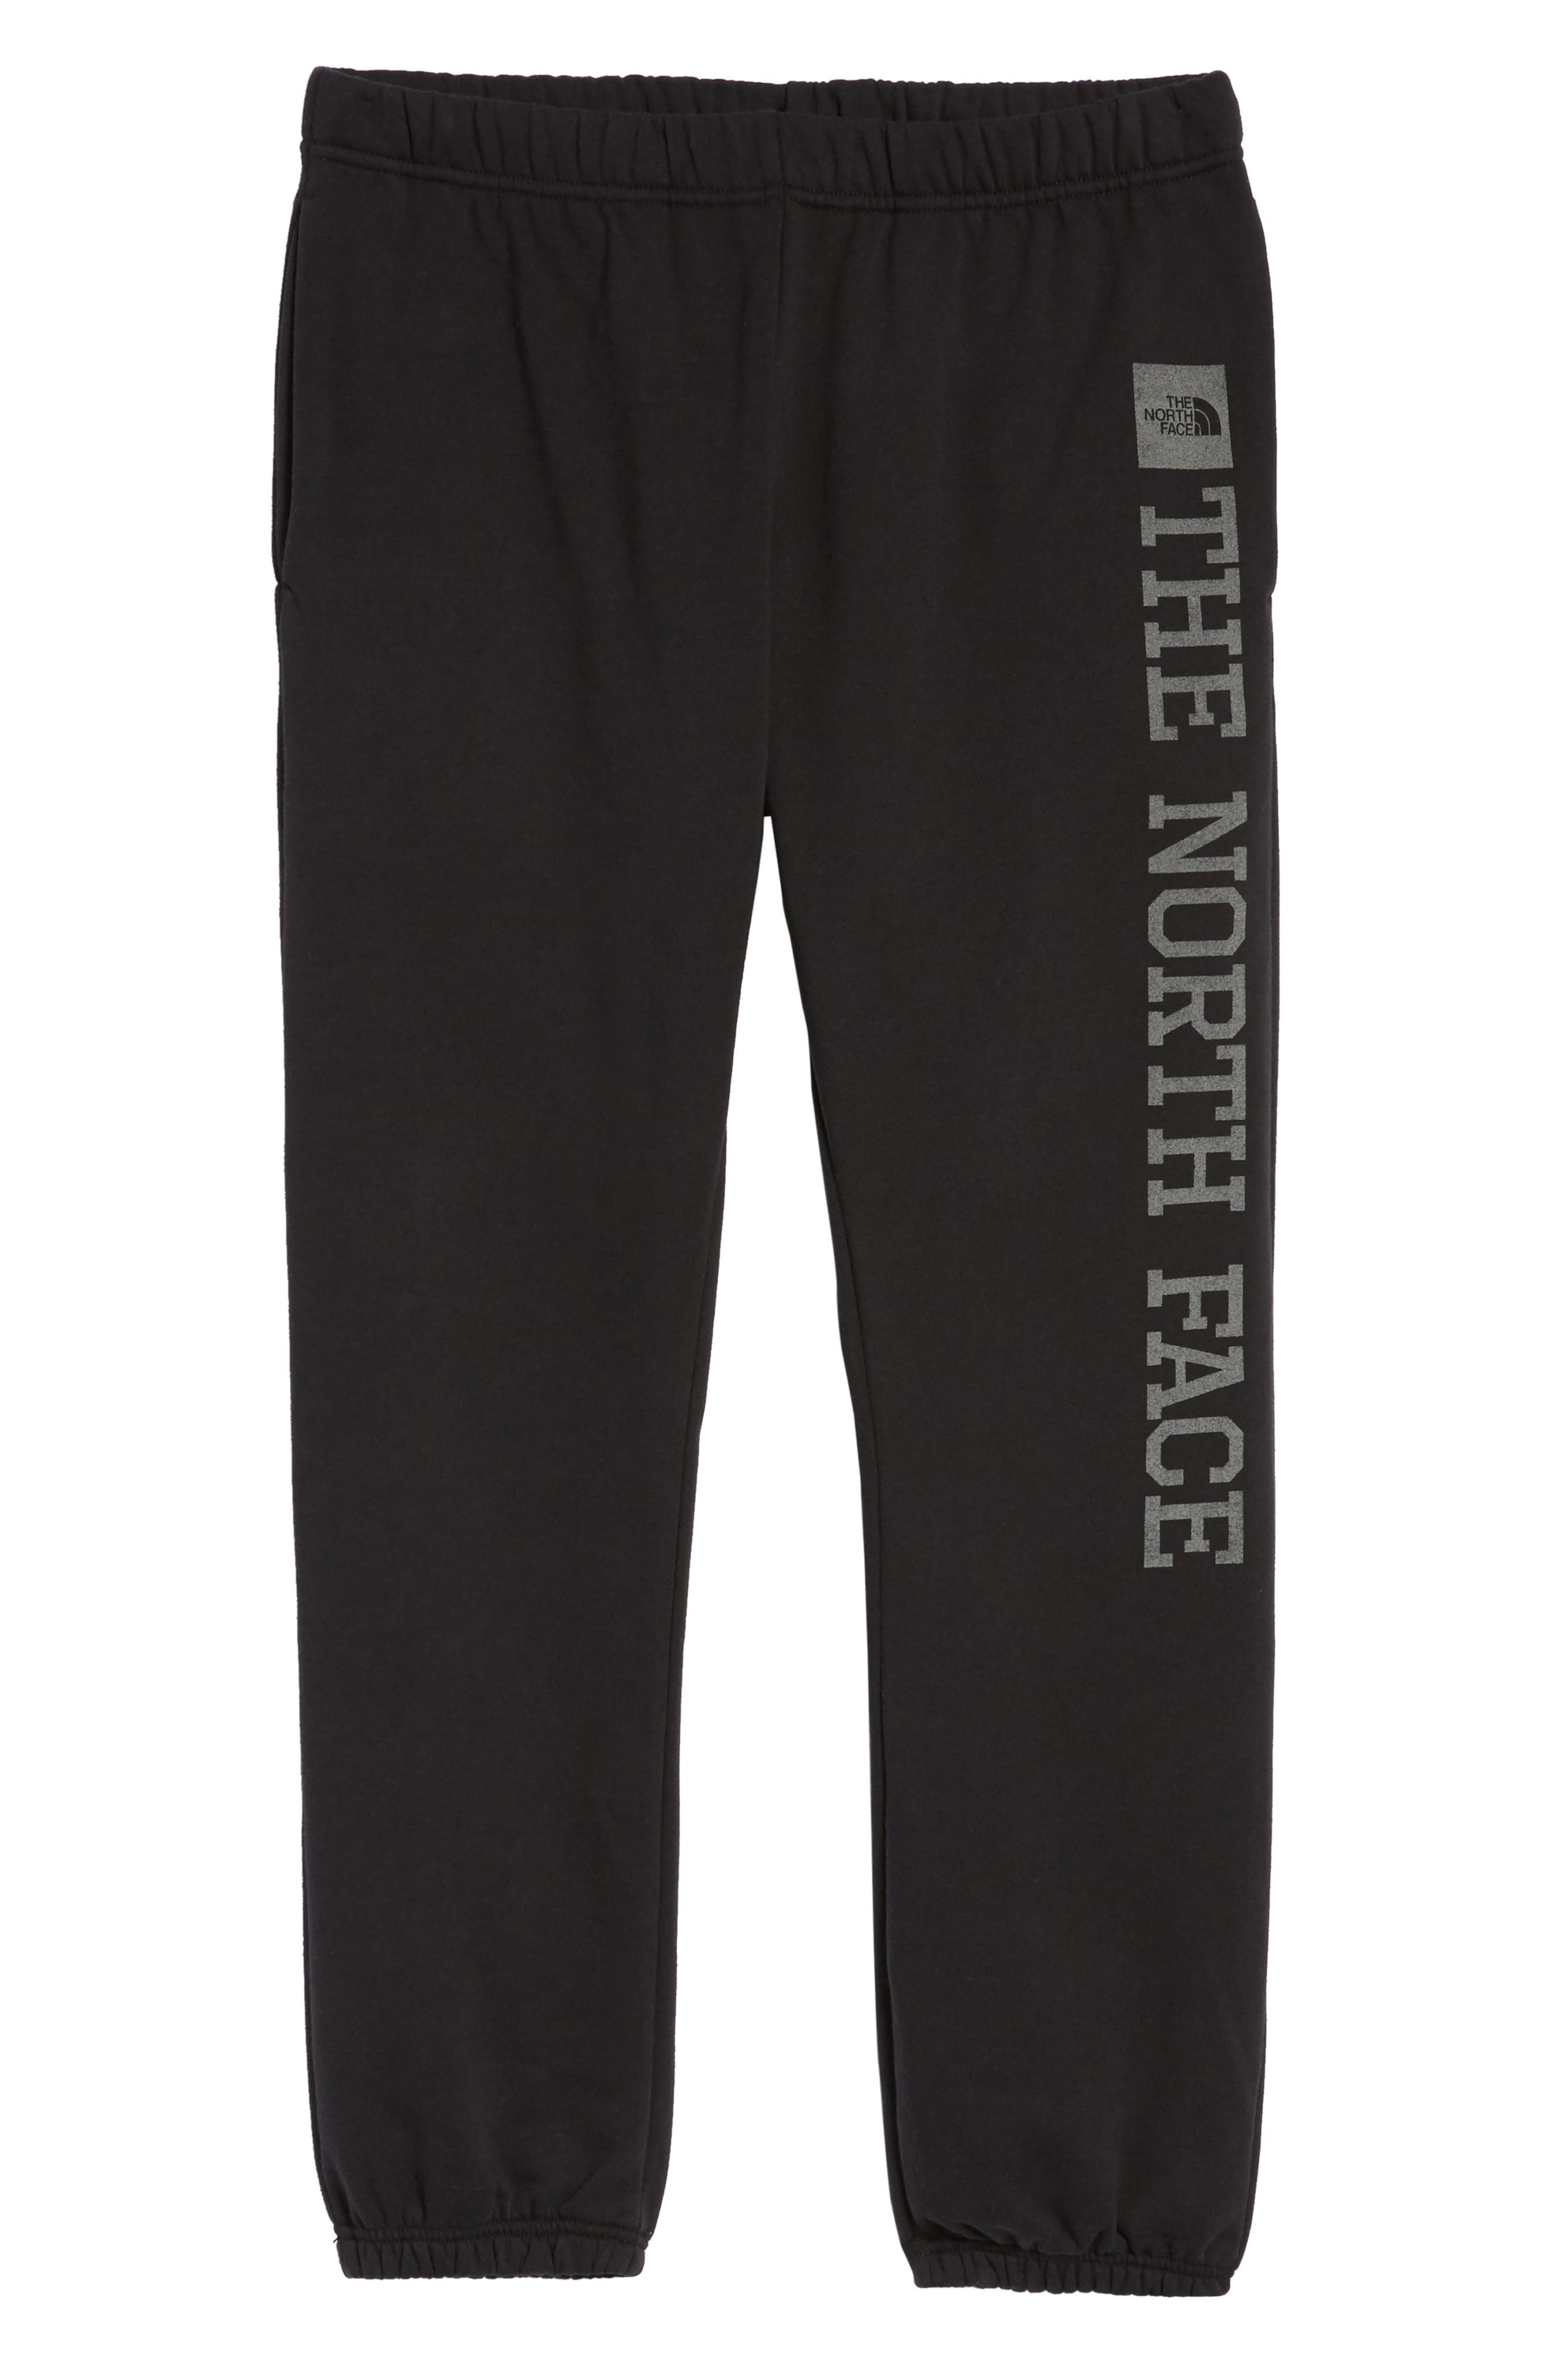 Reflective Never Stop Pants,                             Alternate thumbnail 11, color,